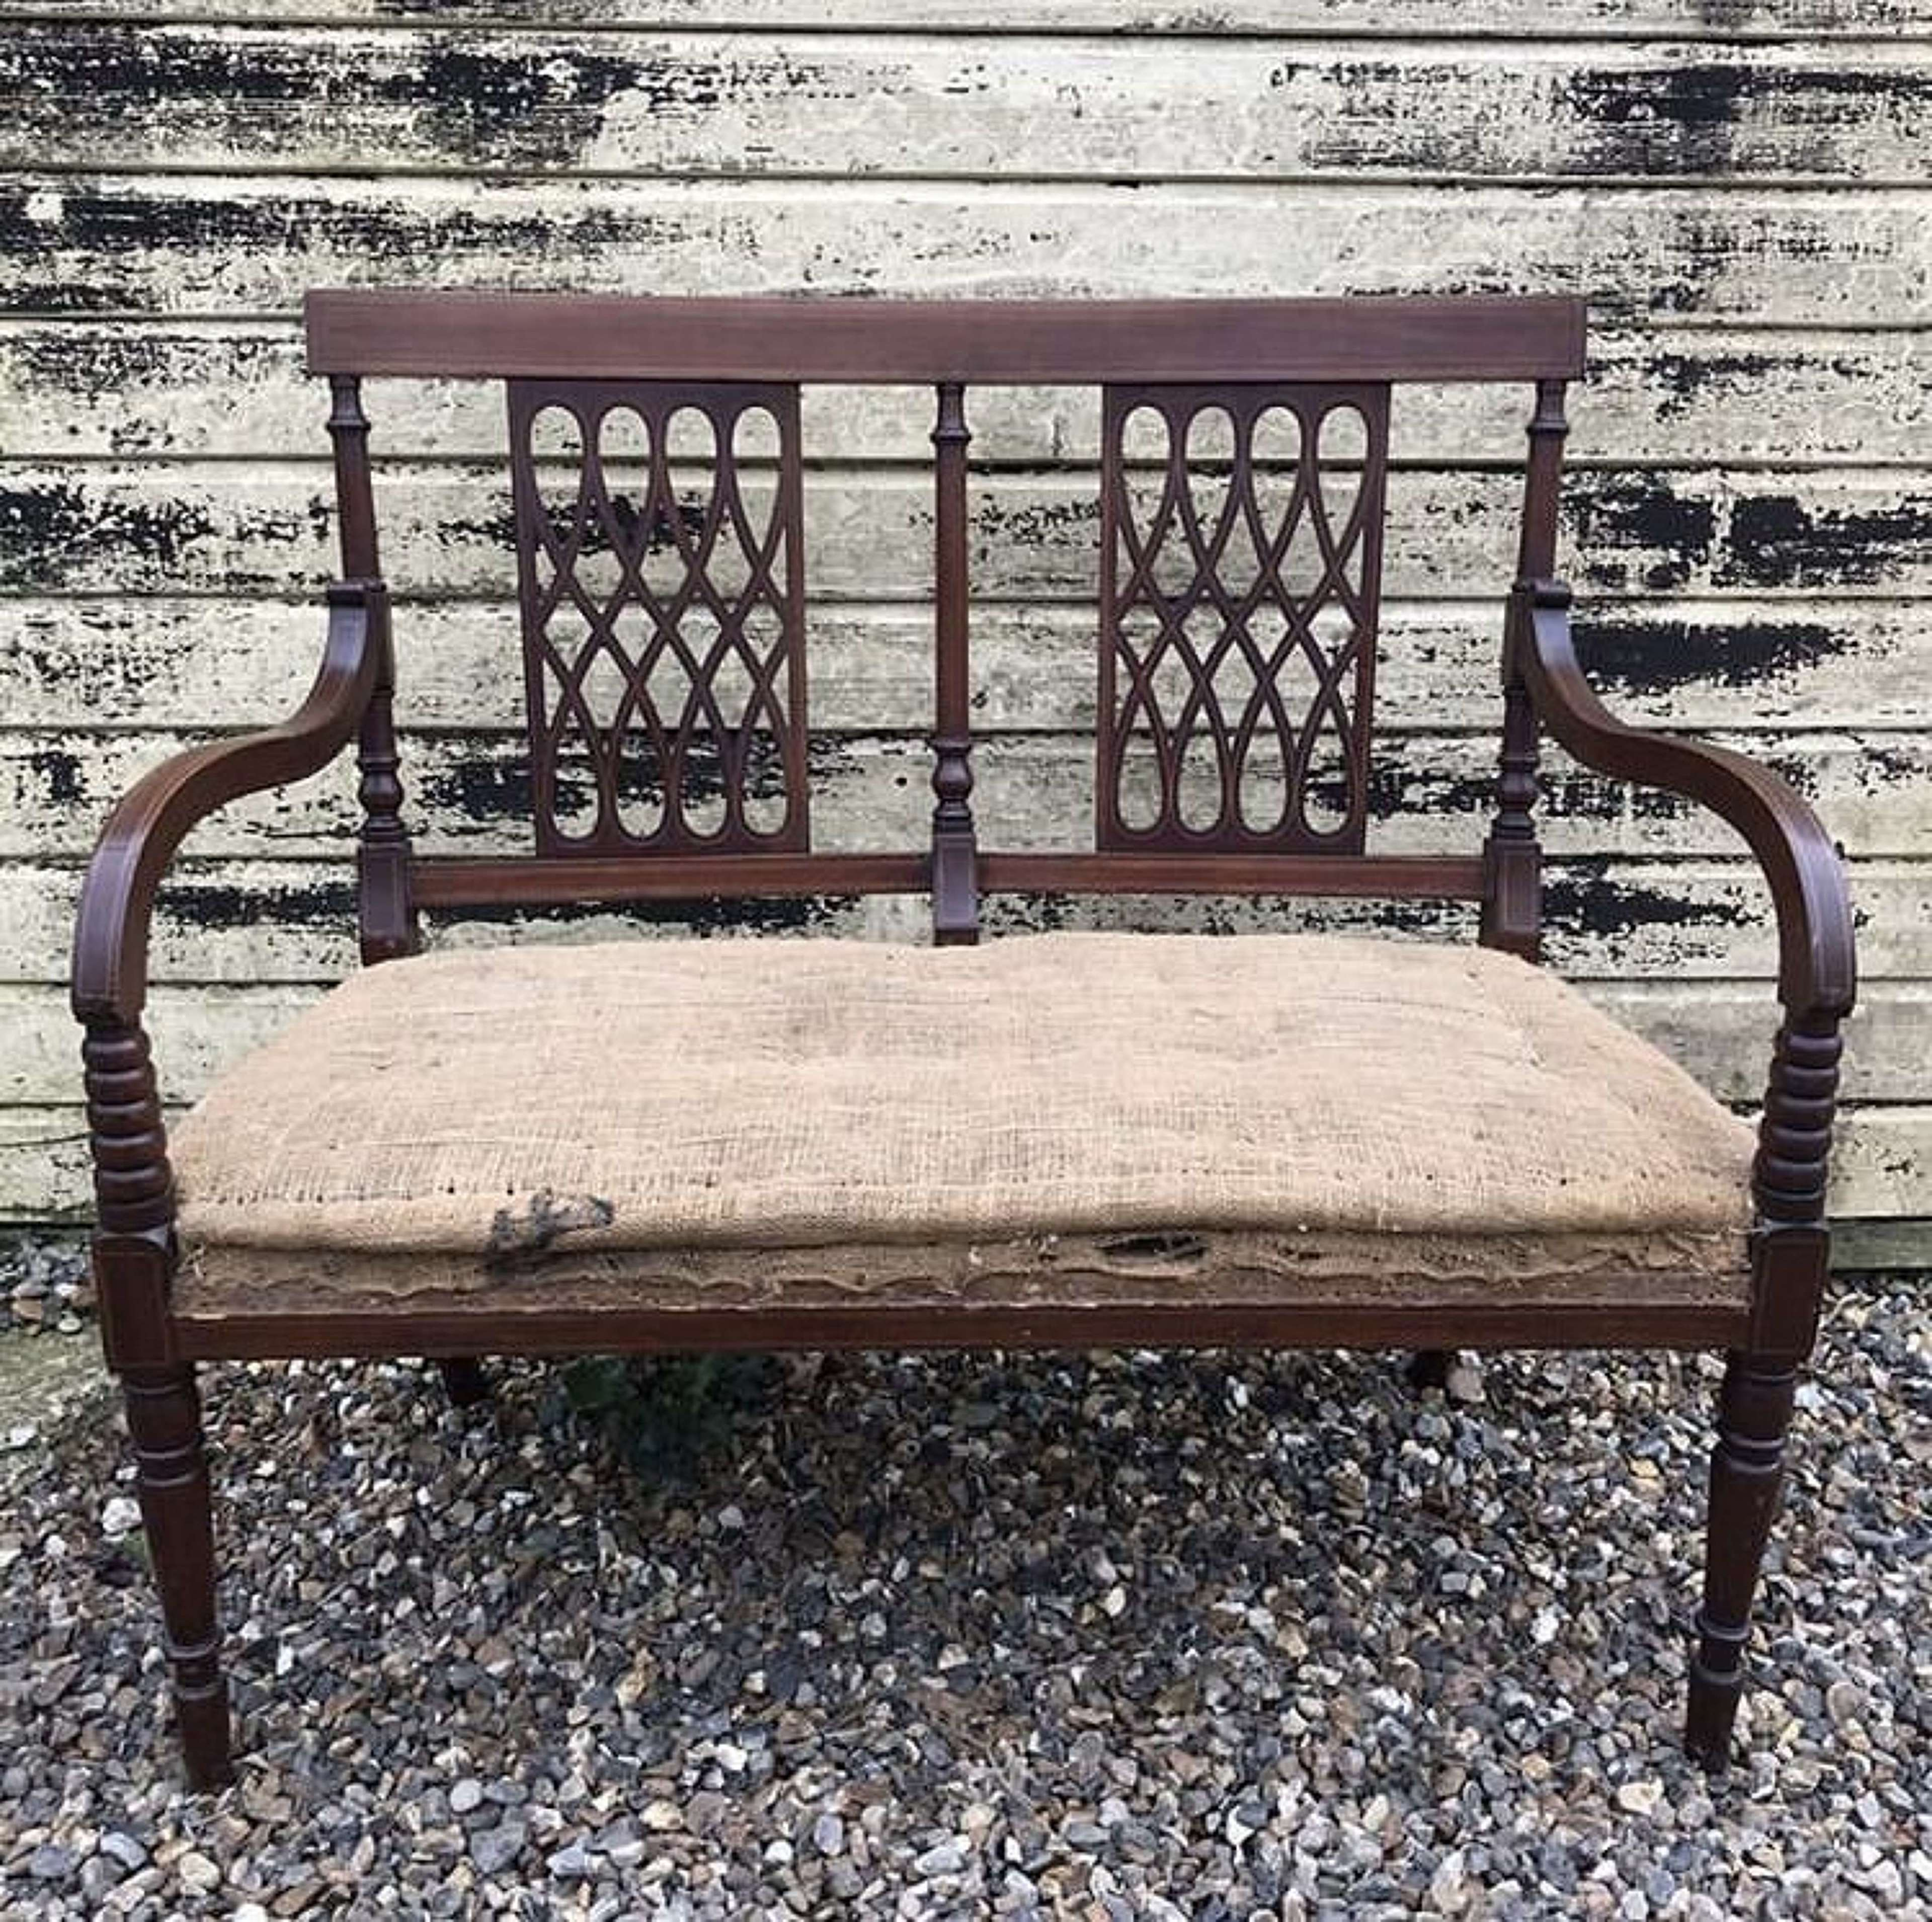 Edwardian 2 seater open armchair or sofa with inlaid frame